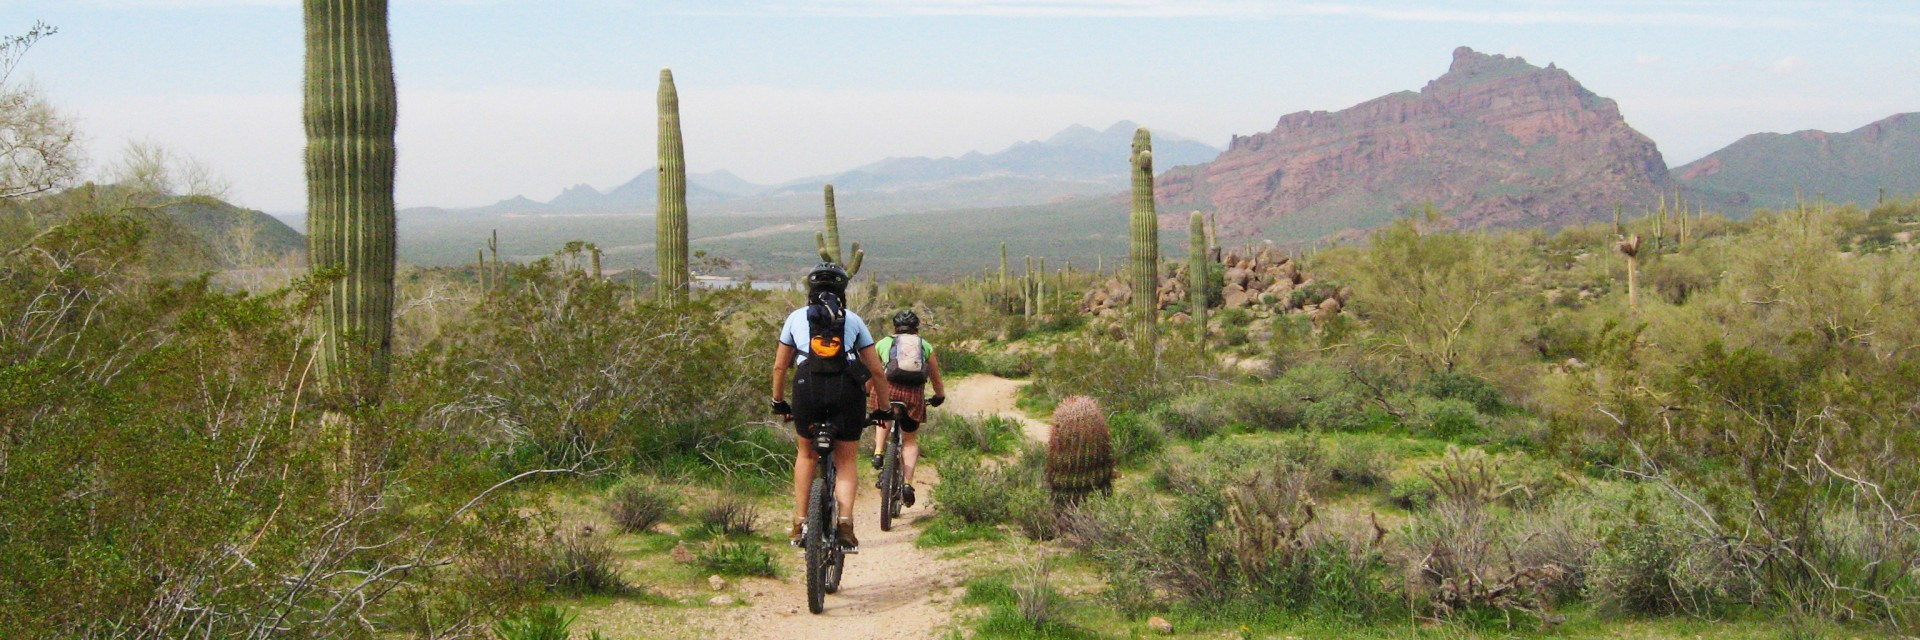 Two riders thread their way on singletrack between tall saquaro catcti in McDowell Sonoran Preserve